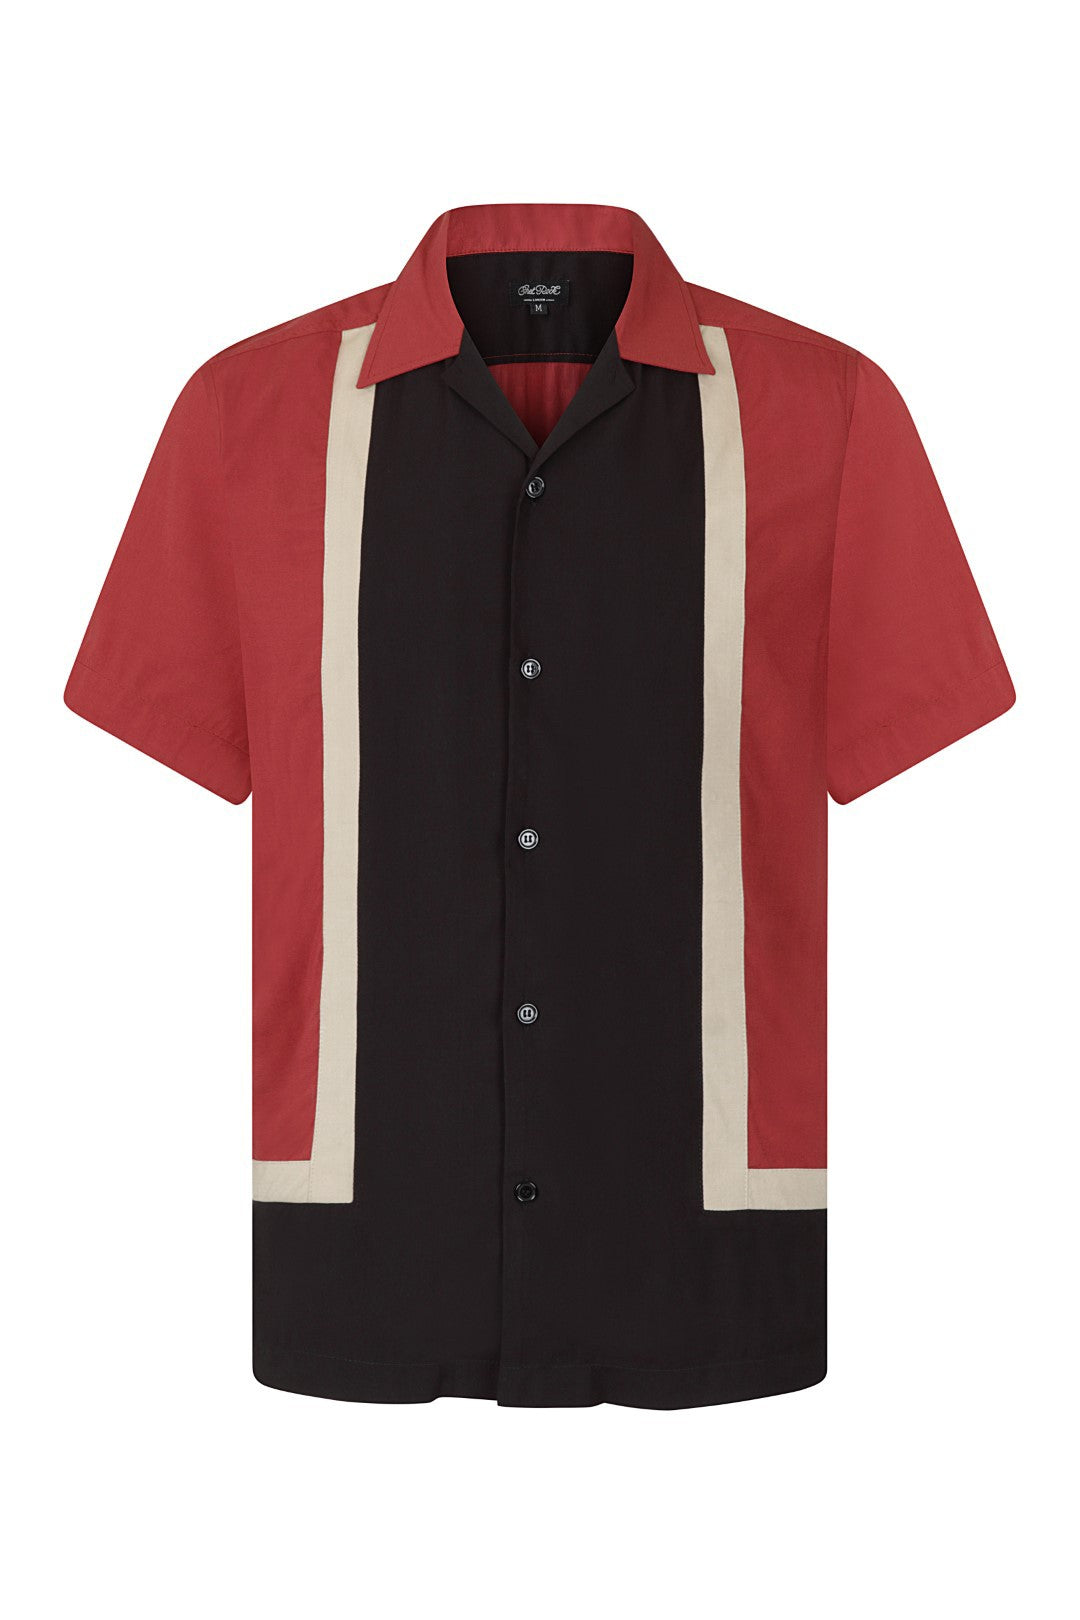 Mens Walter Contrast Black Red White Detail 1950's Bowling Shirt